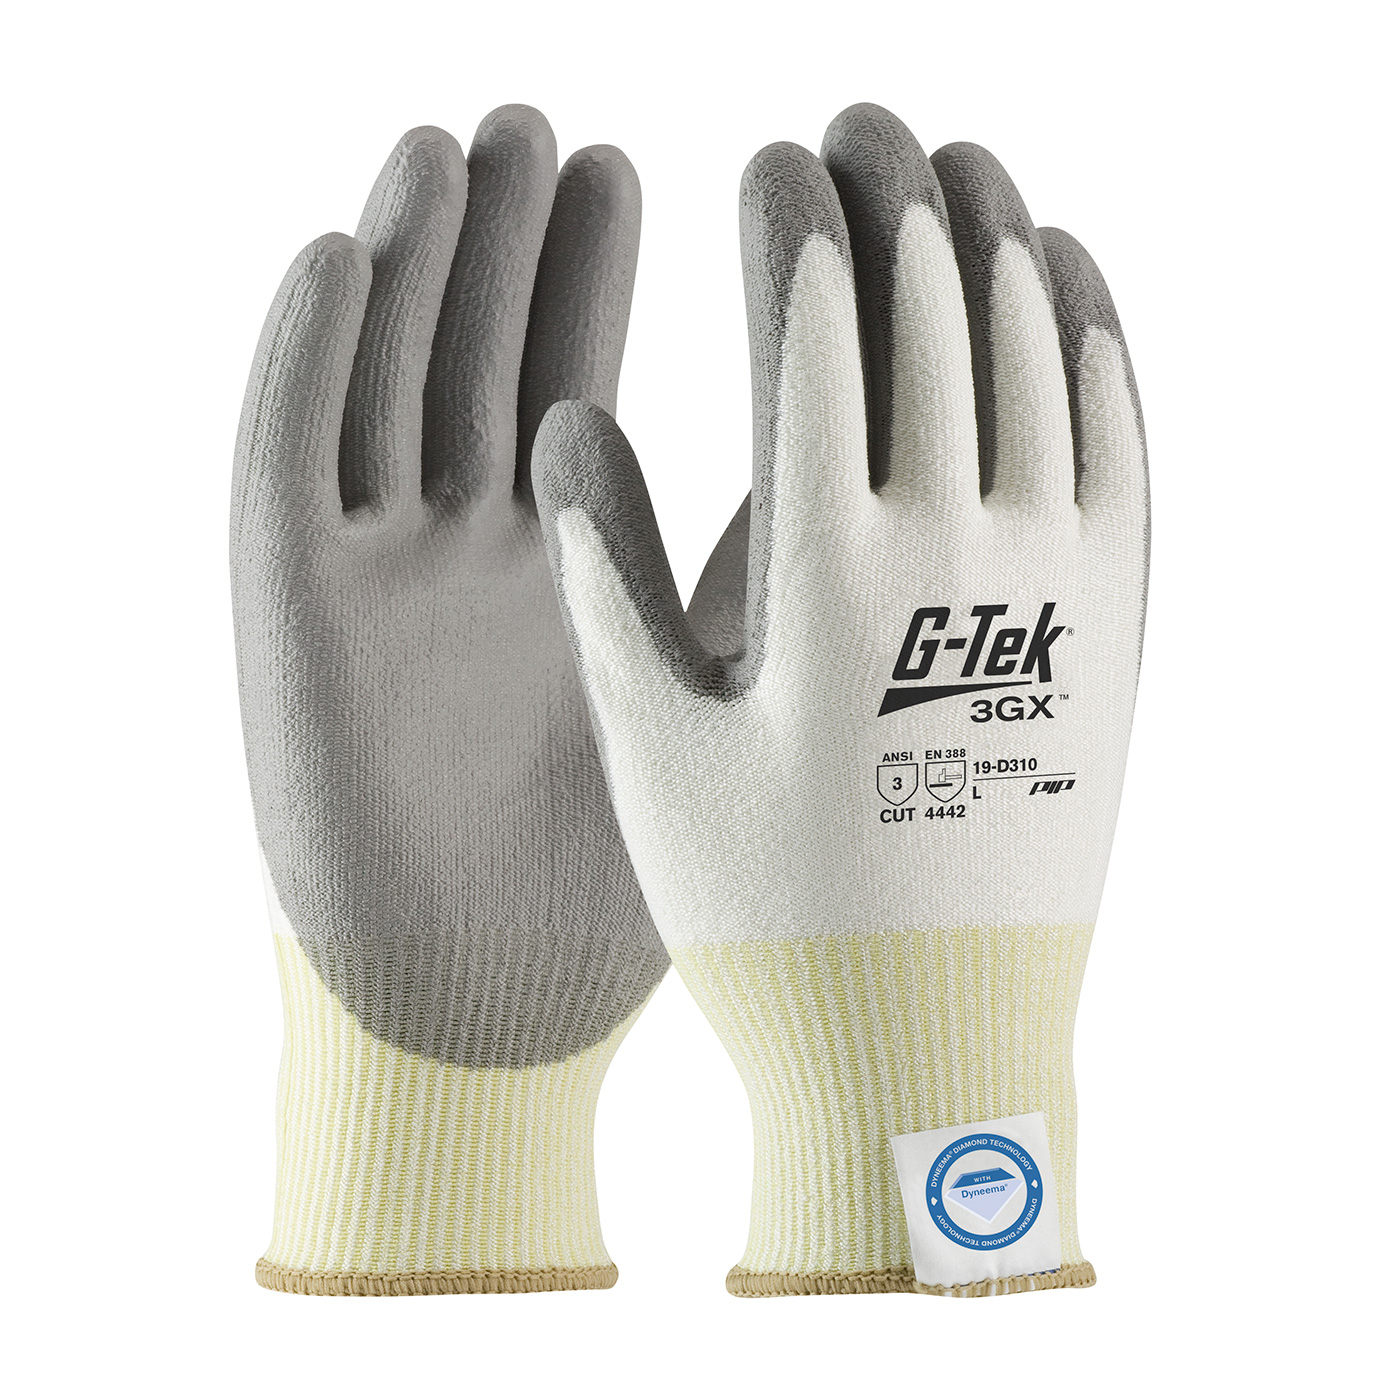 #19-D310 PIP G-Tek® 3GX Dyneema® Diamond Cut-Resistant Protective Work Glove w/ Polyurethane Coating provide Cut level A3 protection